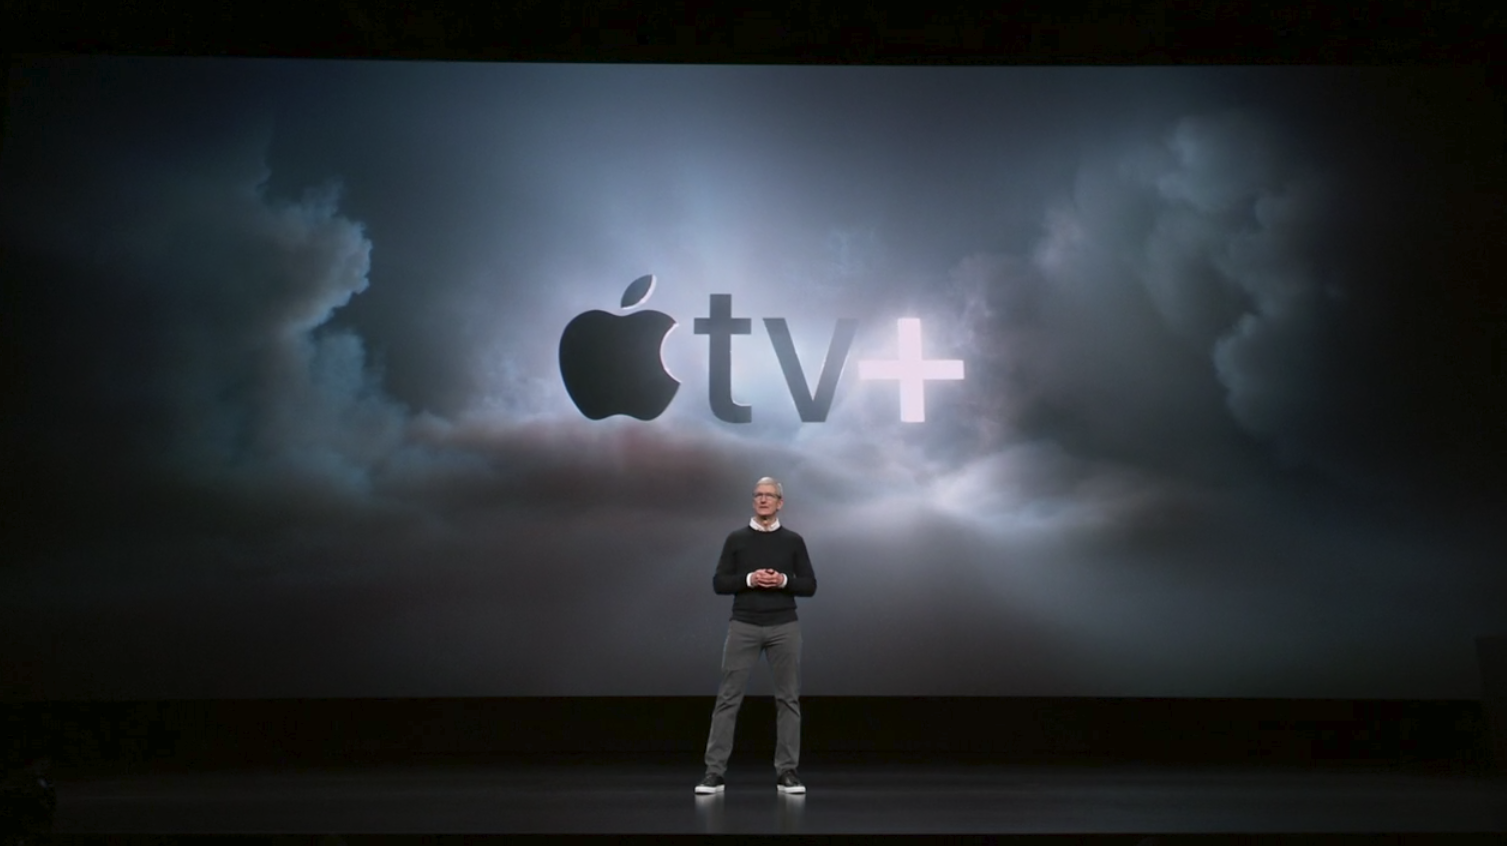 March 2019 - Apple switches to services